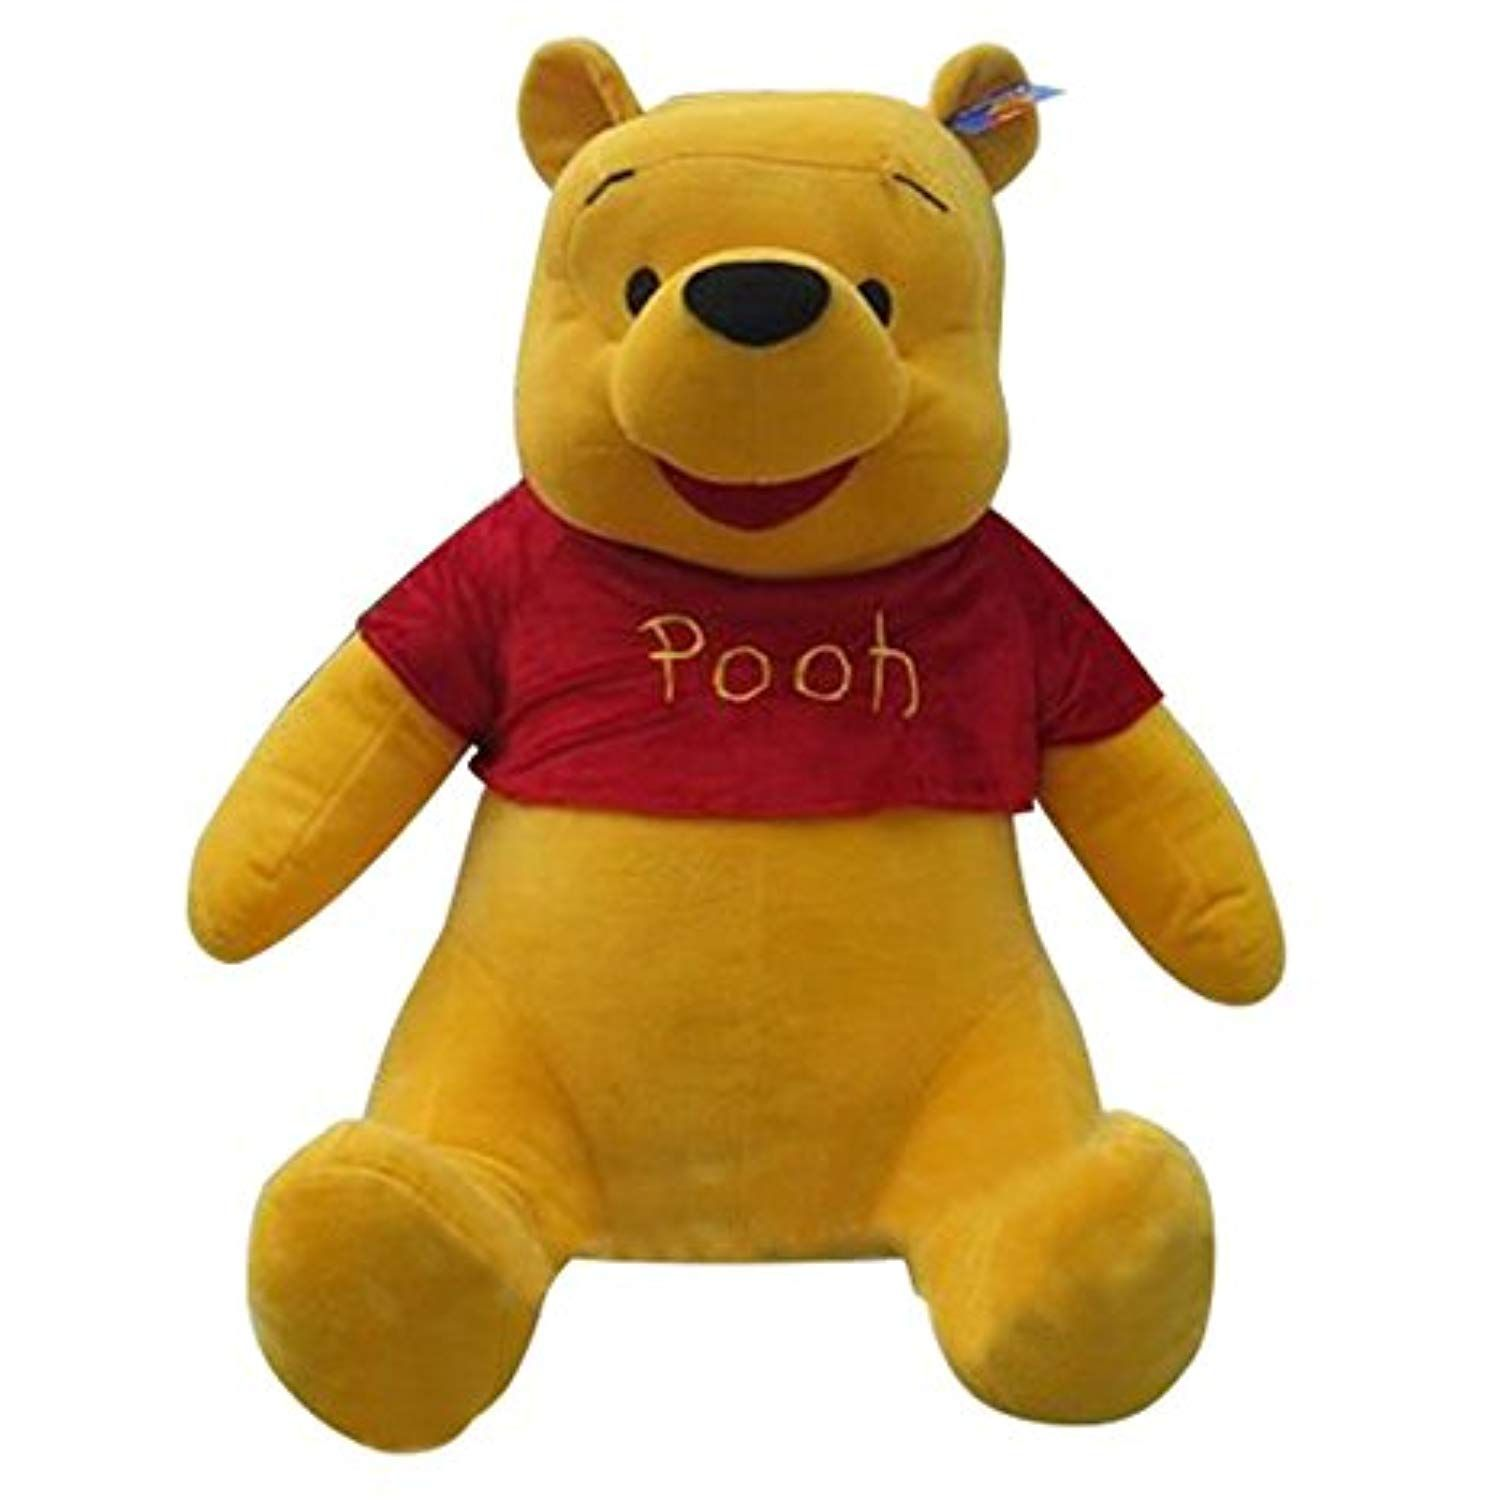 3 28 Feet 39 3 Giant Big Huge Jumbo Winnie The Pooh Bear Plush Stuffed Toy You Can Find Out More Details At The Link Of The Pooh Winnie The Pooh Pooh Bear